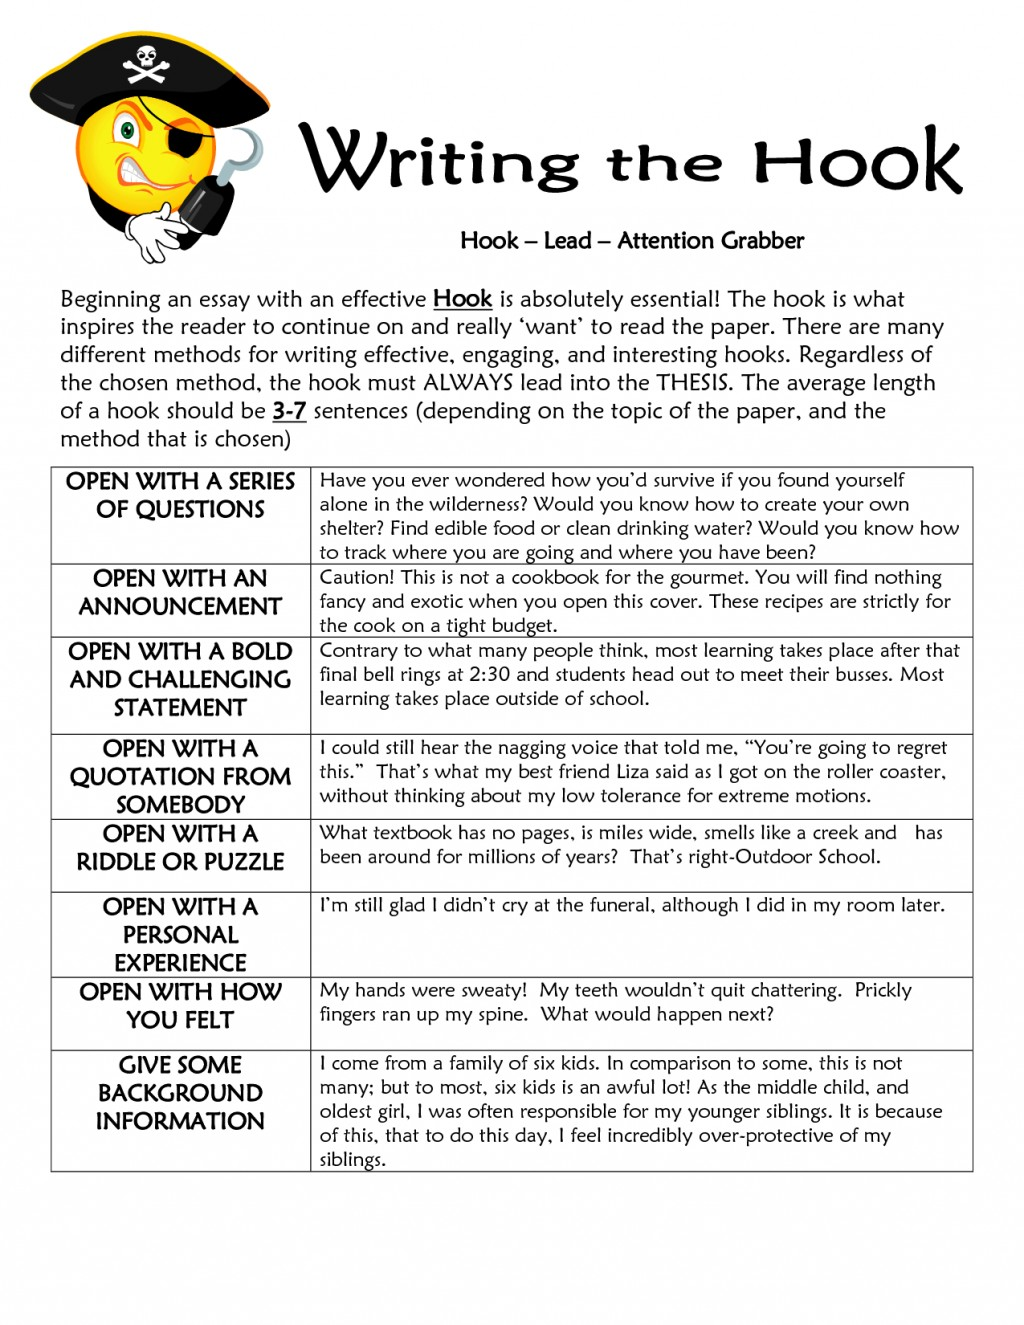 001 Good Hook For An Essay Impressive A About The Odyssey Writing Large